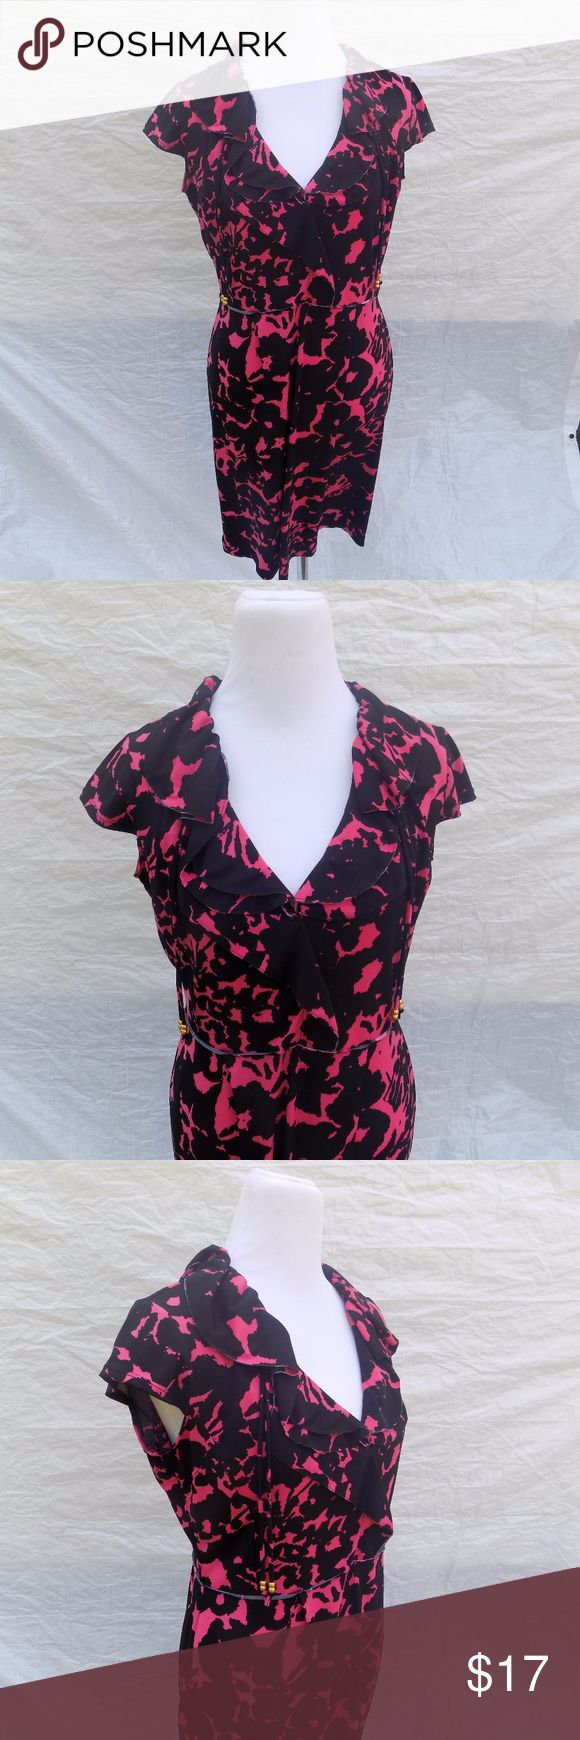 Julian Taylor 12 Dress Pink Black Floral Knit Midi Brand:   Julian Taylor.  Color:   Pink and Black.  Tag Size:    Misses  12  Bust:    40 in.  Waist:     32 in.  Hips:    42 in.  Sleeve Length:  Length:  40 in.  Materials:   Polyester.  Care Instructions:  Hand Wash, Line Dry Julian Taylor Dresses Midi